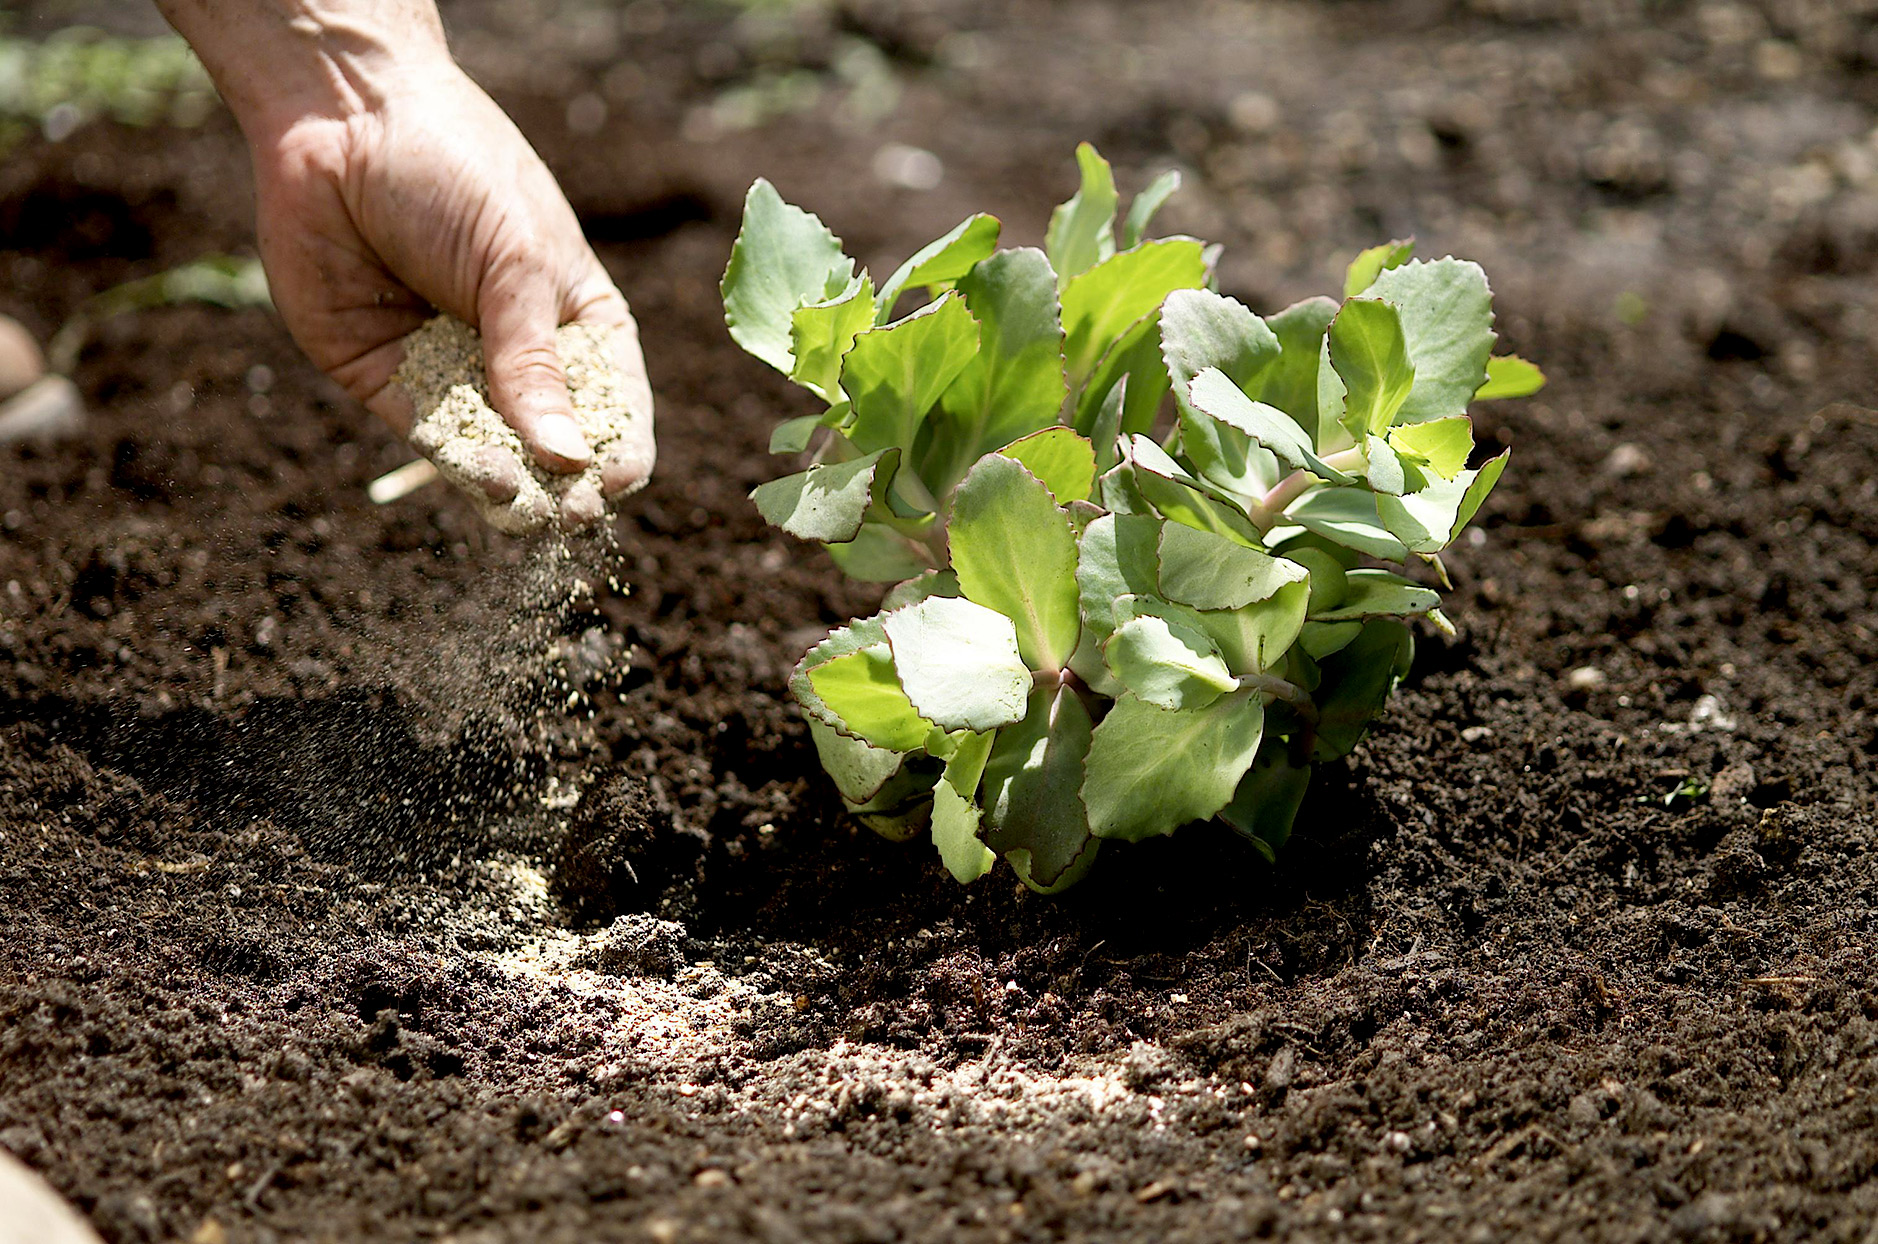 Hand placing material on plant in garden